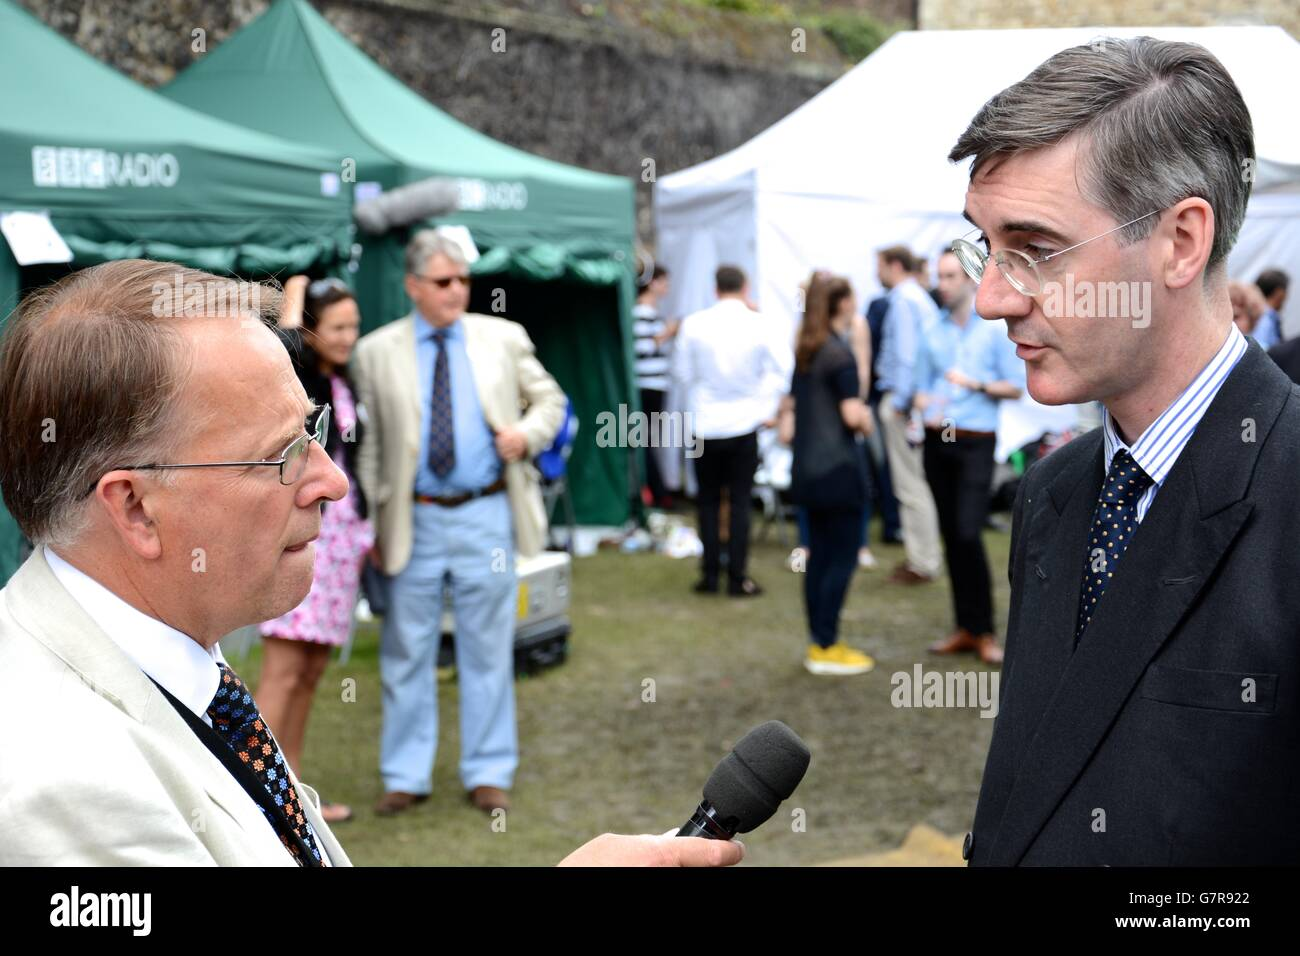 Michael Crick interviews Tory MP Jacob Rees Mogg on College Green after the EU Referendum. - Stock Image